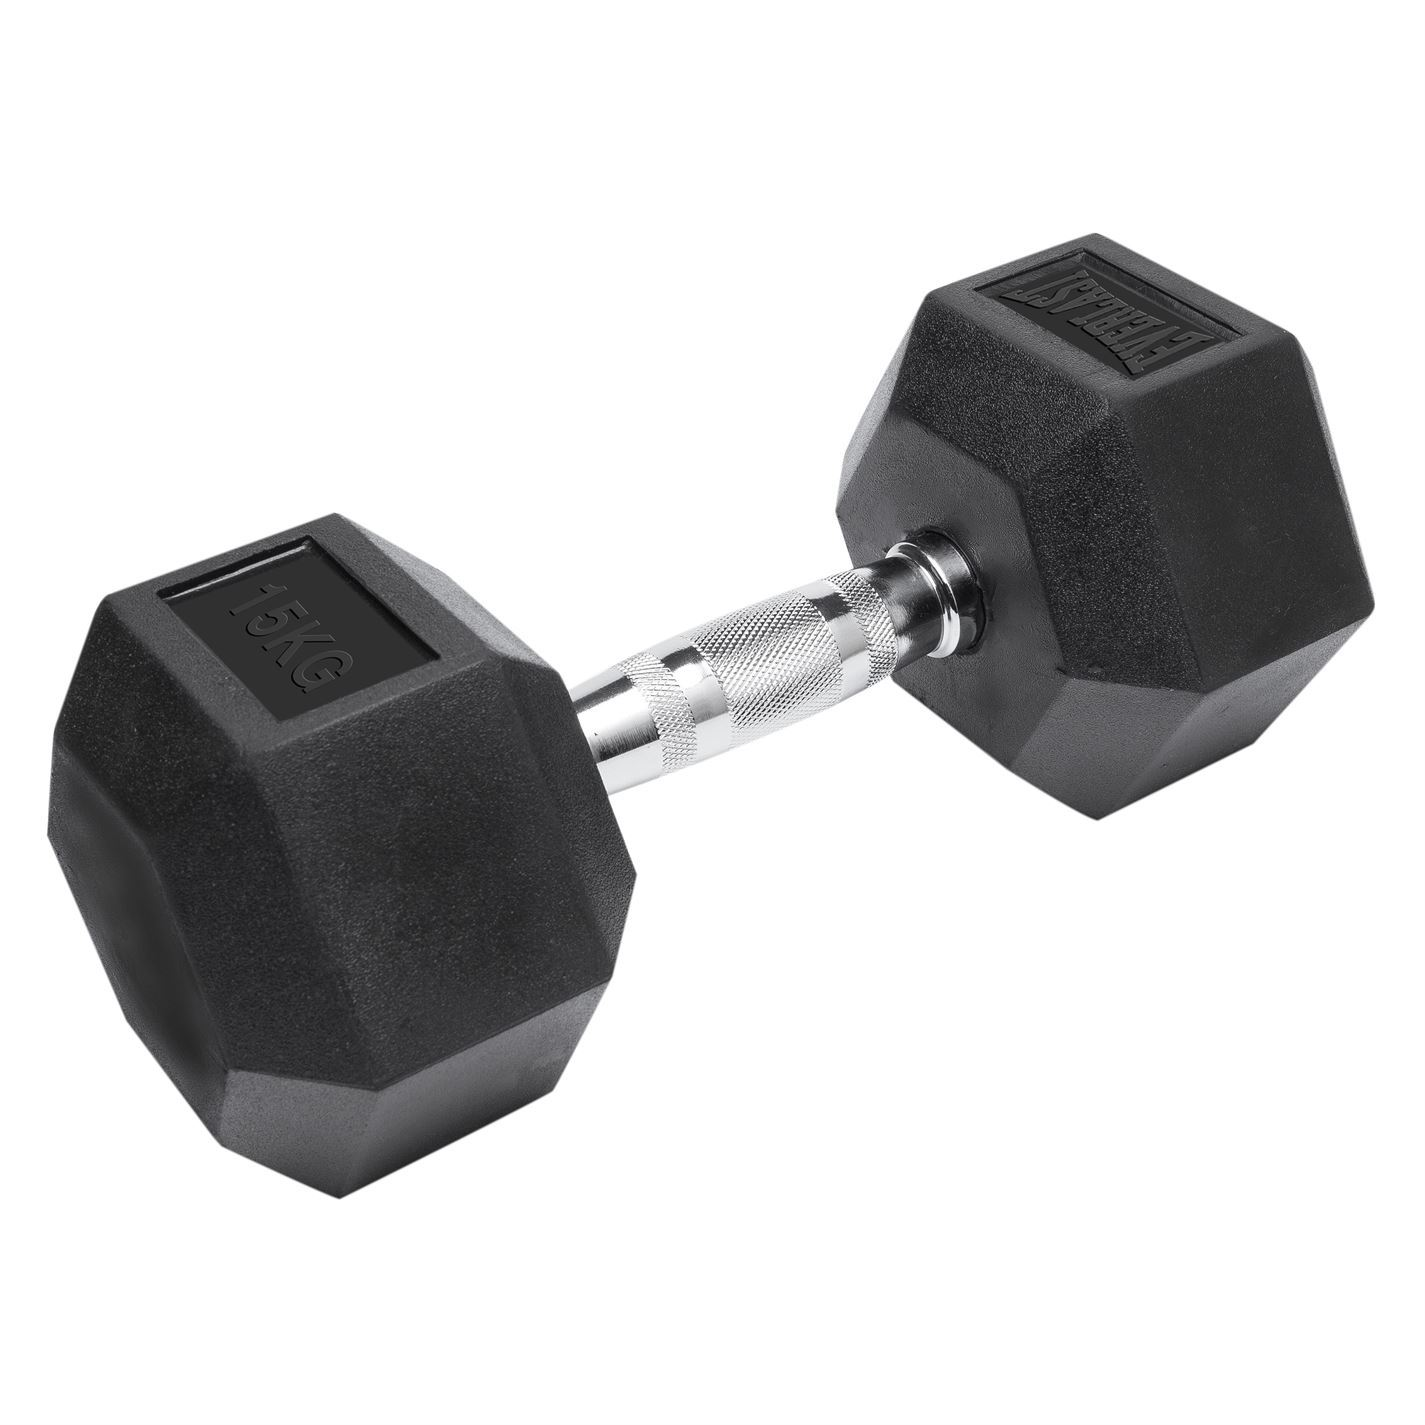 Everlast-Hex-Weights-Training-Exercising-Home-Gym-Accessories